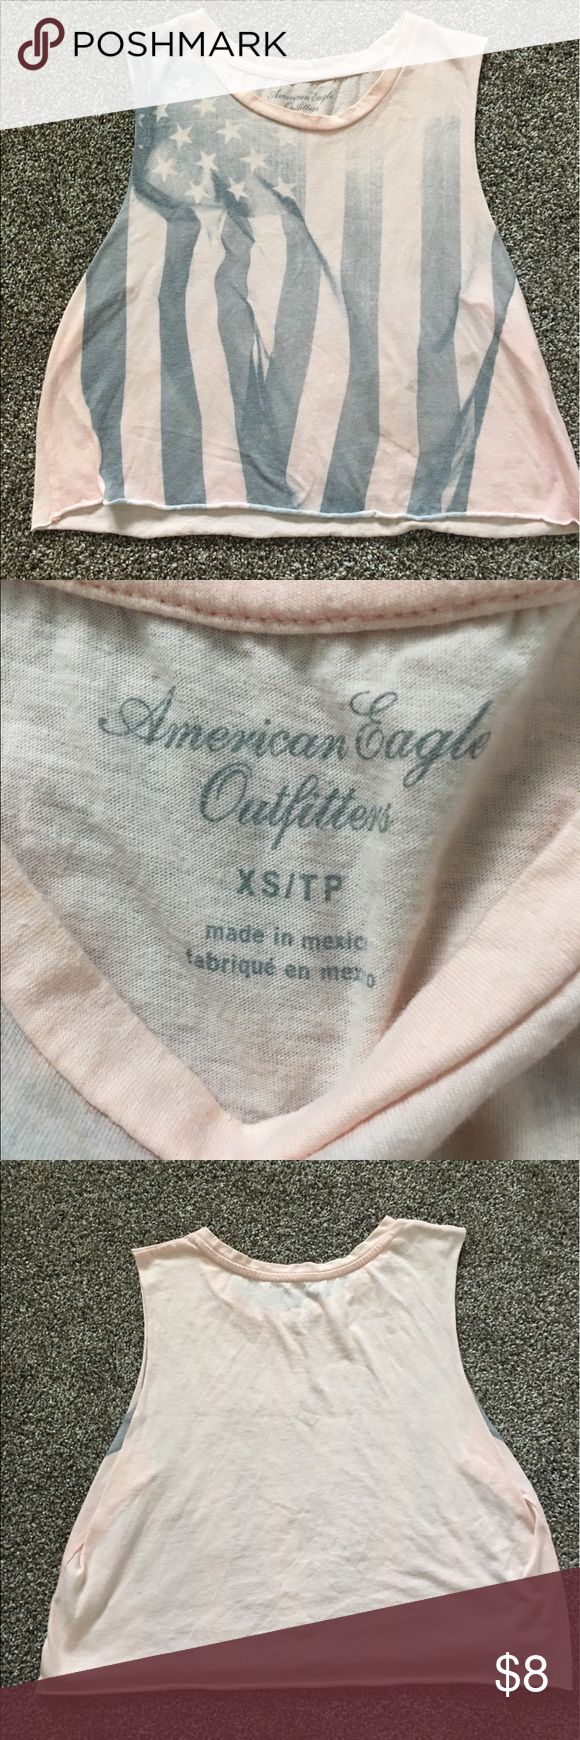 American Eagle Crop Top Selling this light pink crop top from American Eagle. Has a faded American flag on the front. Size extra small. American Eagle Outfitters Tops Crop Tops